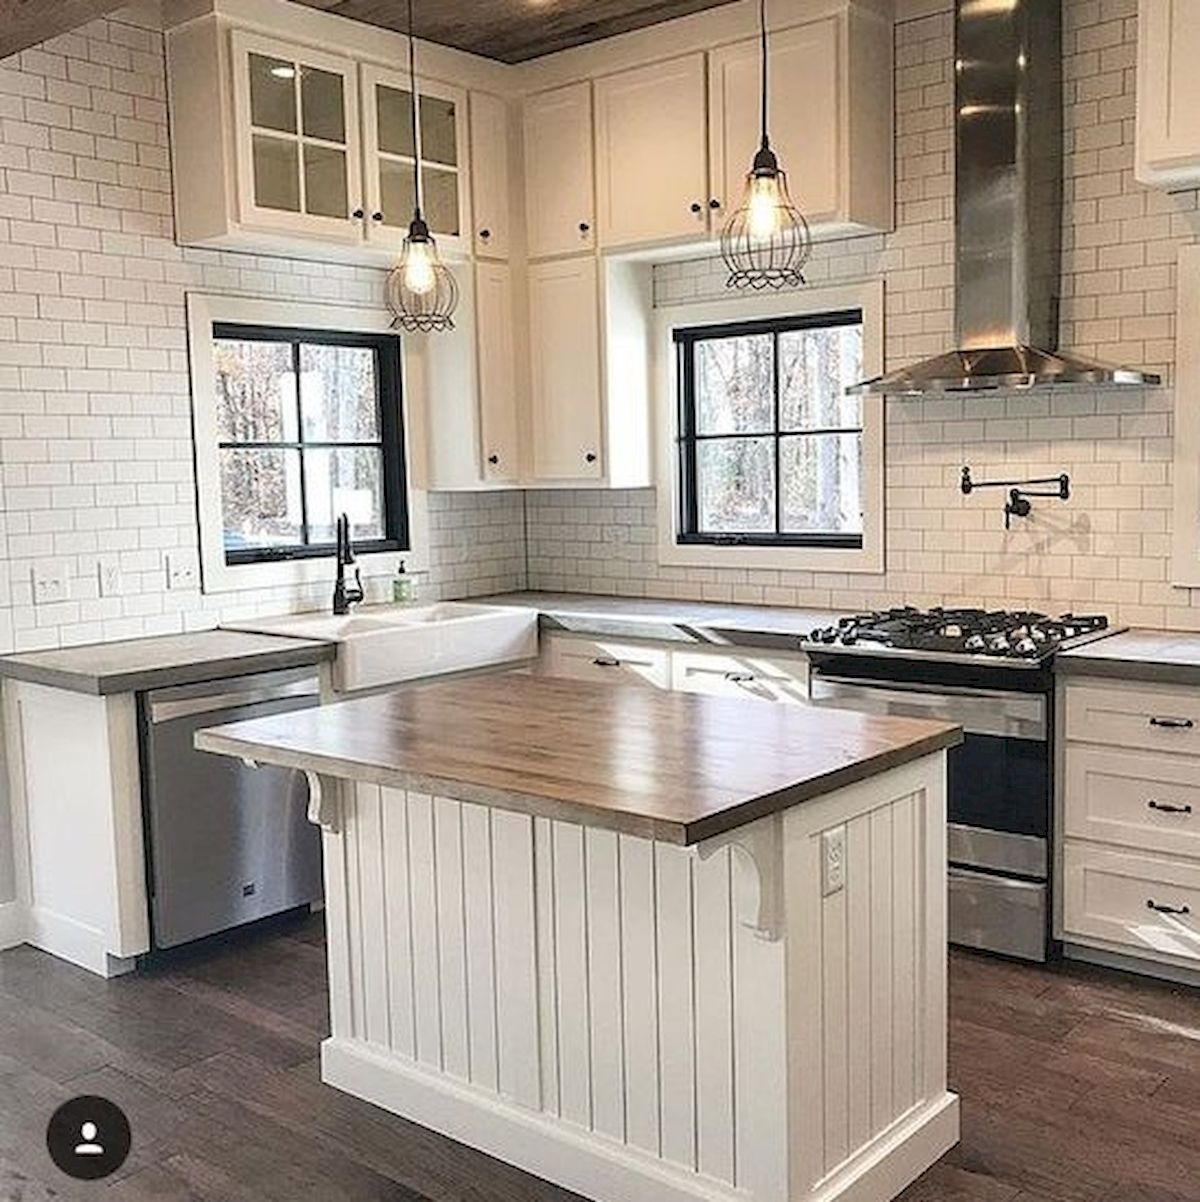 60 Great Farmhouse Kitchen Countertops Design Ideas And